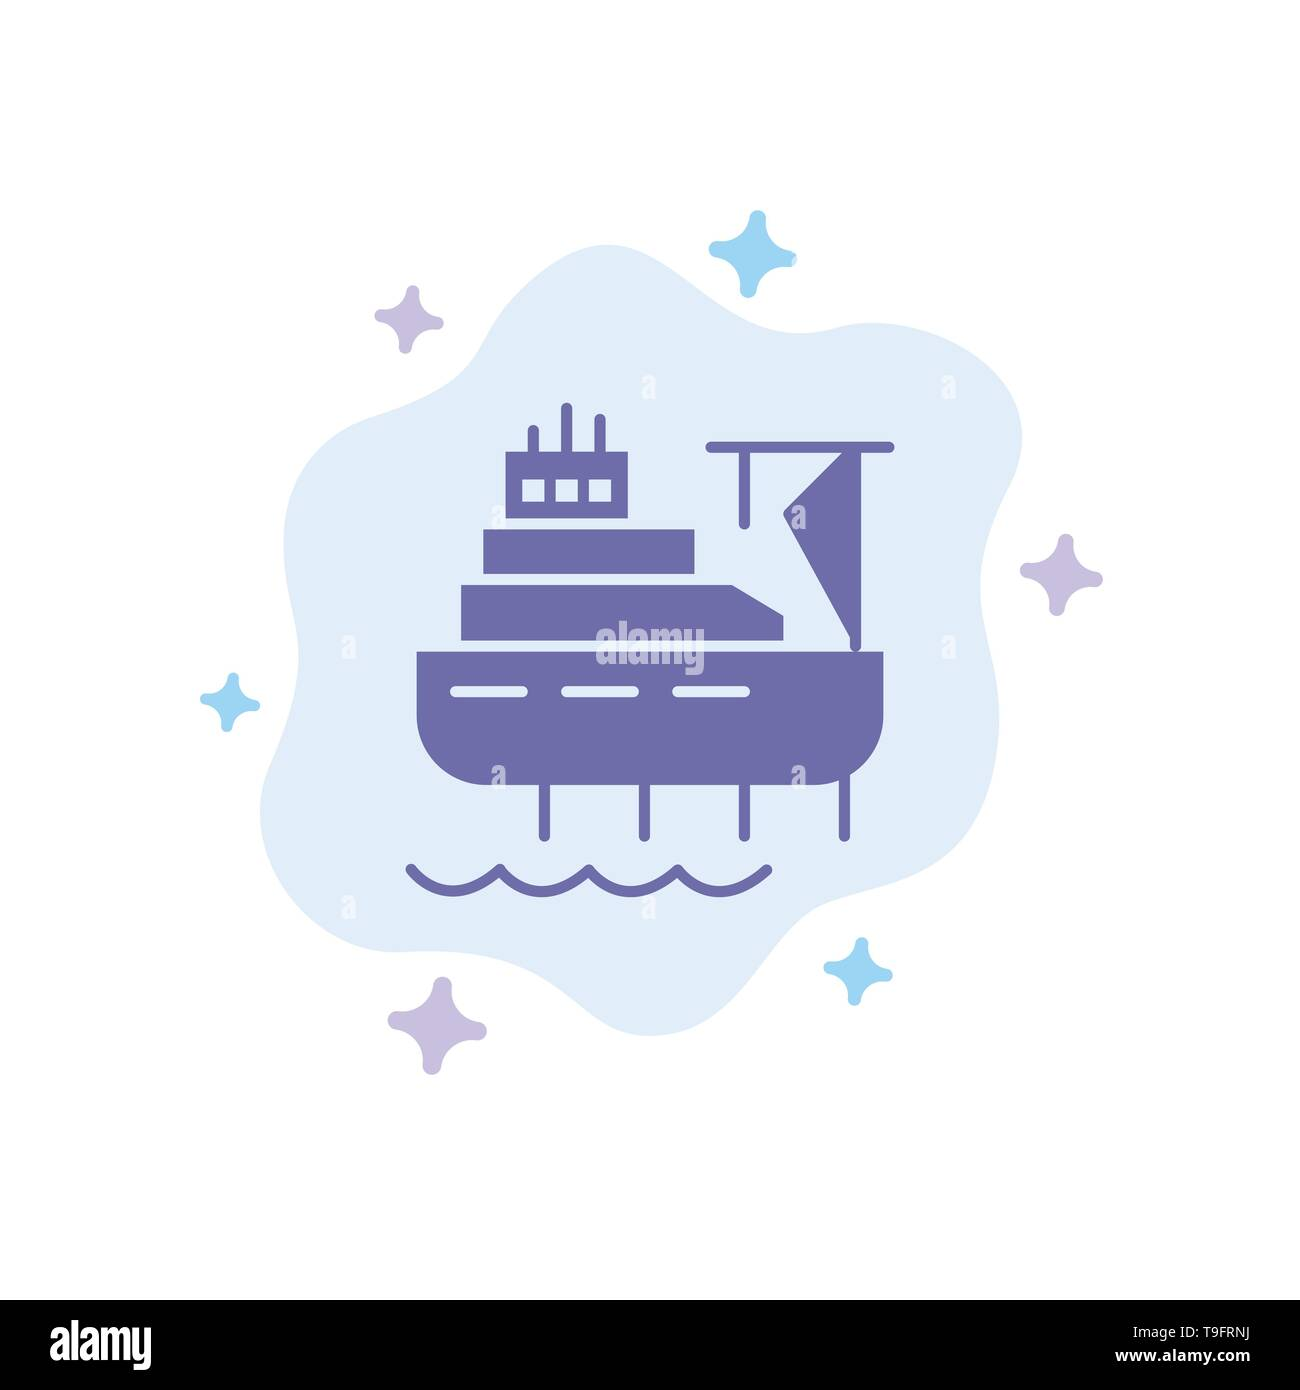 Ship, Boat, Cargo, Construction Blue Icon on Abstract Cloud Background - Stock Image